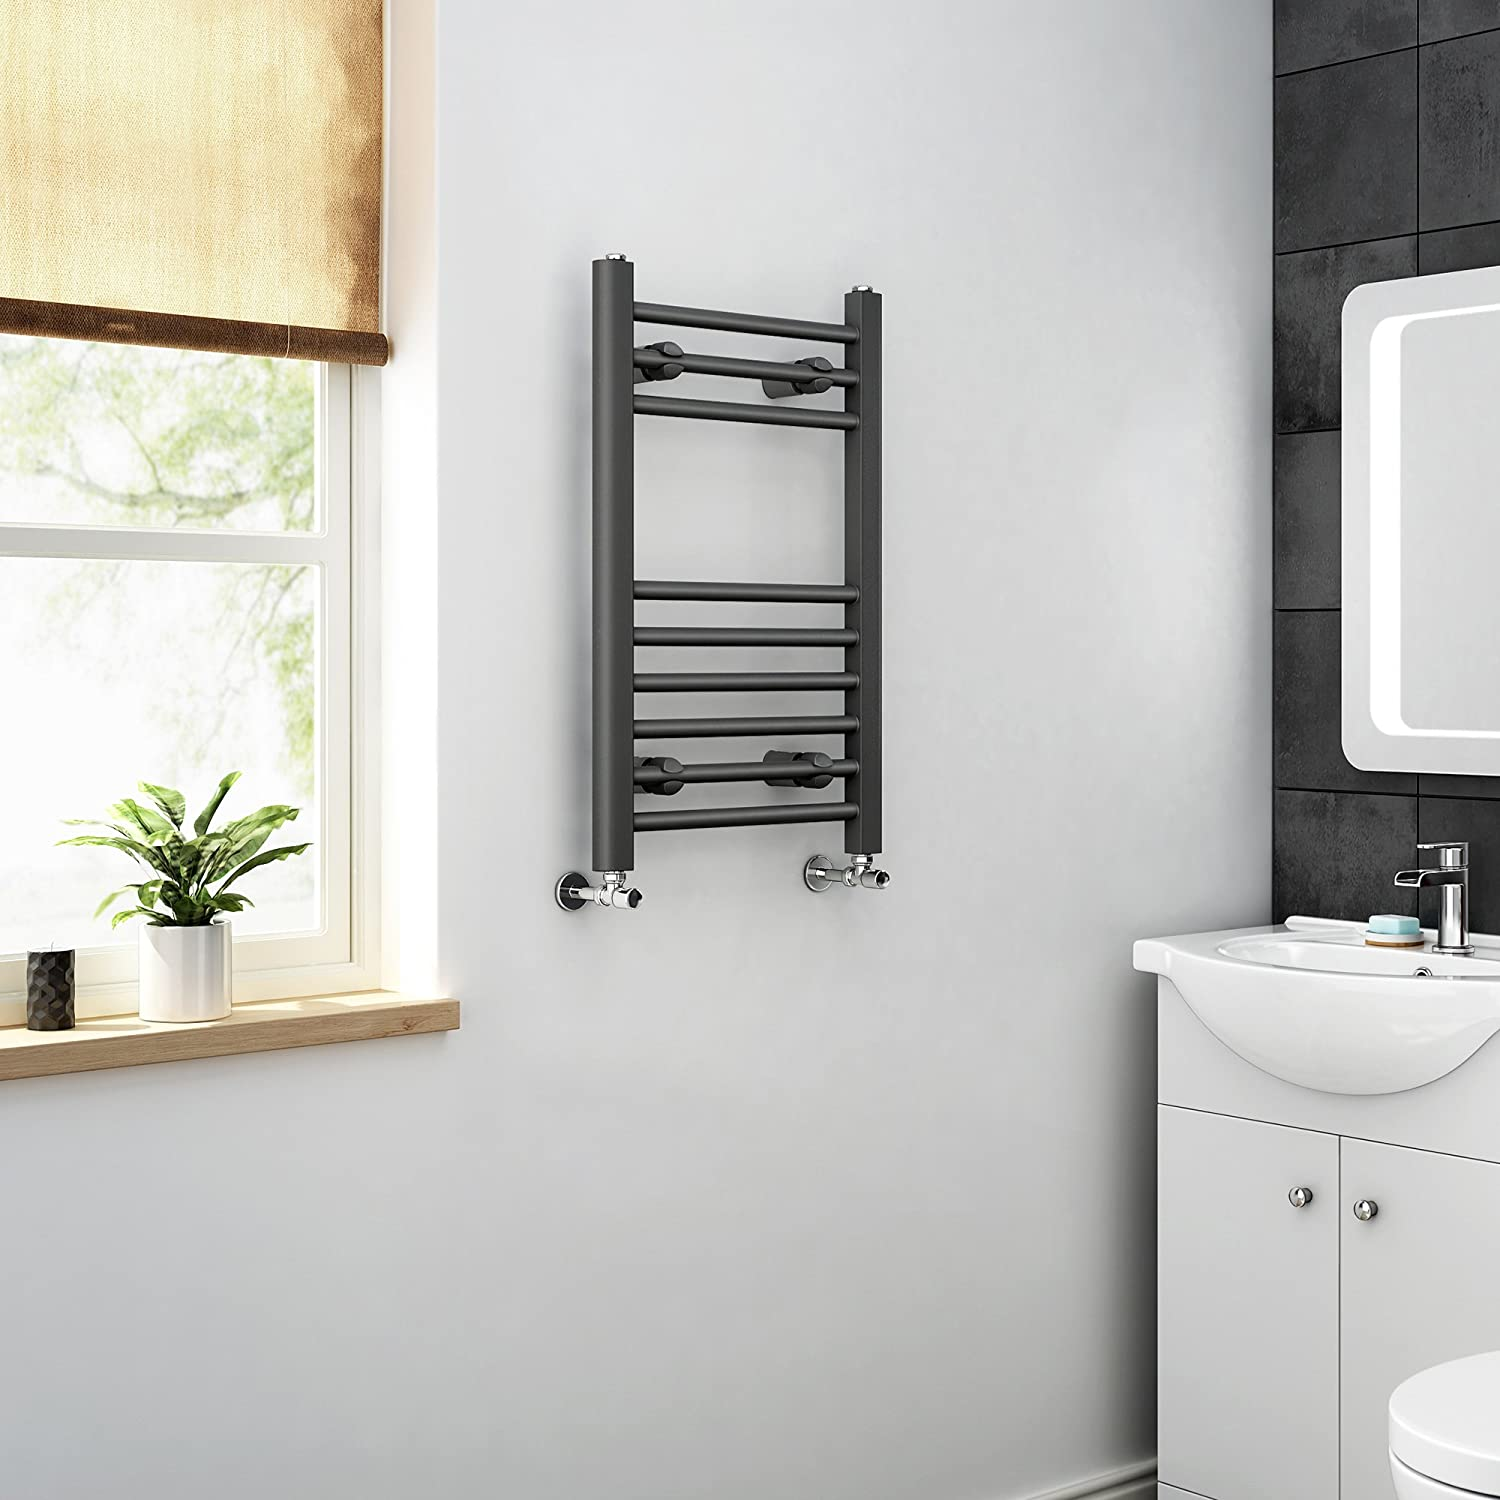 Natasha ladder rail straight modern electric towel radiator in chrome - Ibathuk 650 X 400 Anthracite Straight Heated Towel Rail Bathroom Radiator All Sizes Ibathuk Amazon Co Uk Kitchen Home